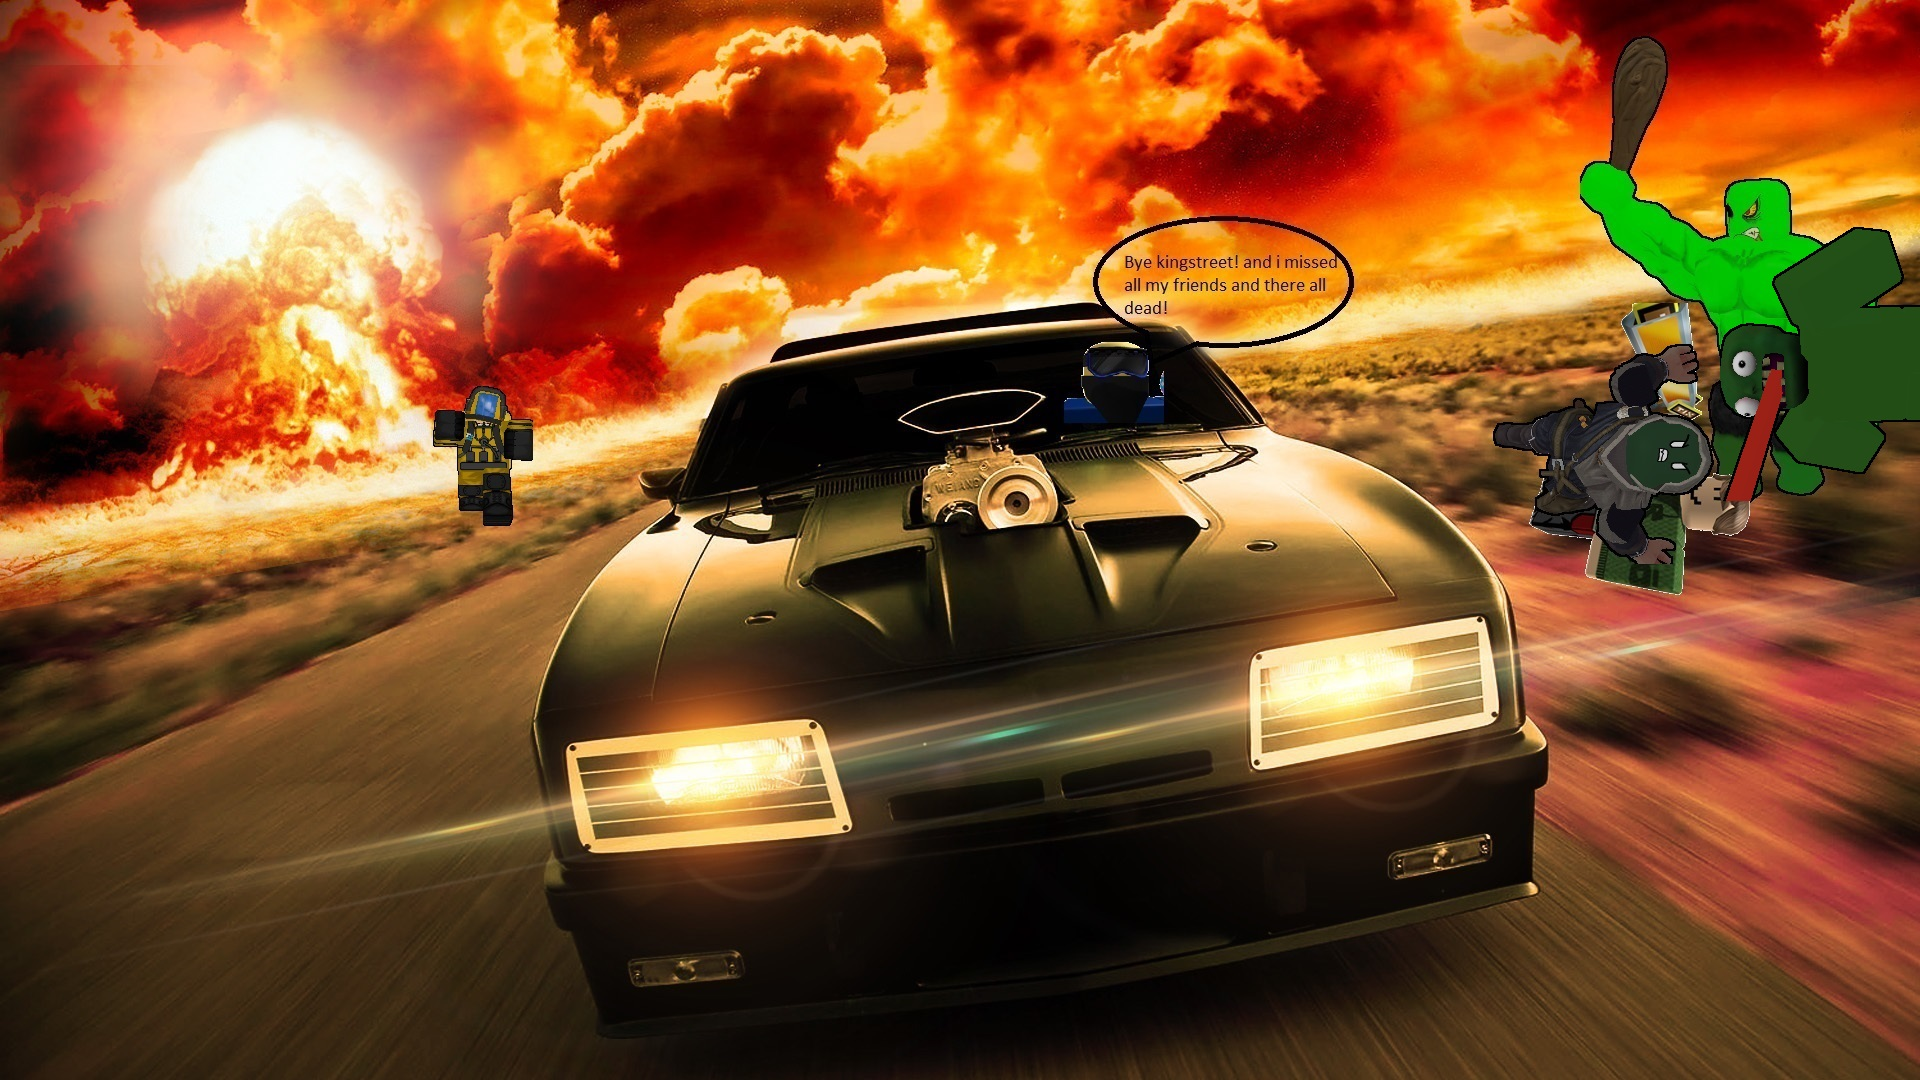 image - auto high-speed car on a background of fire 089363